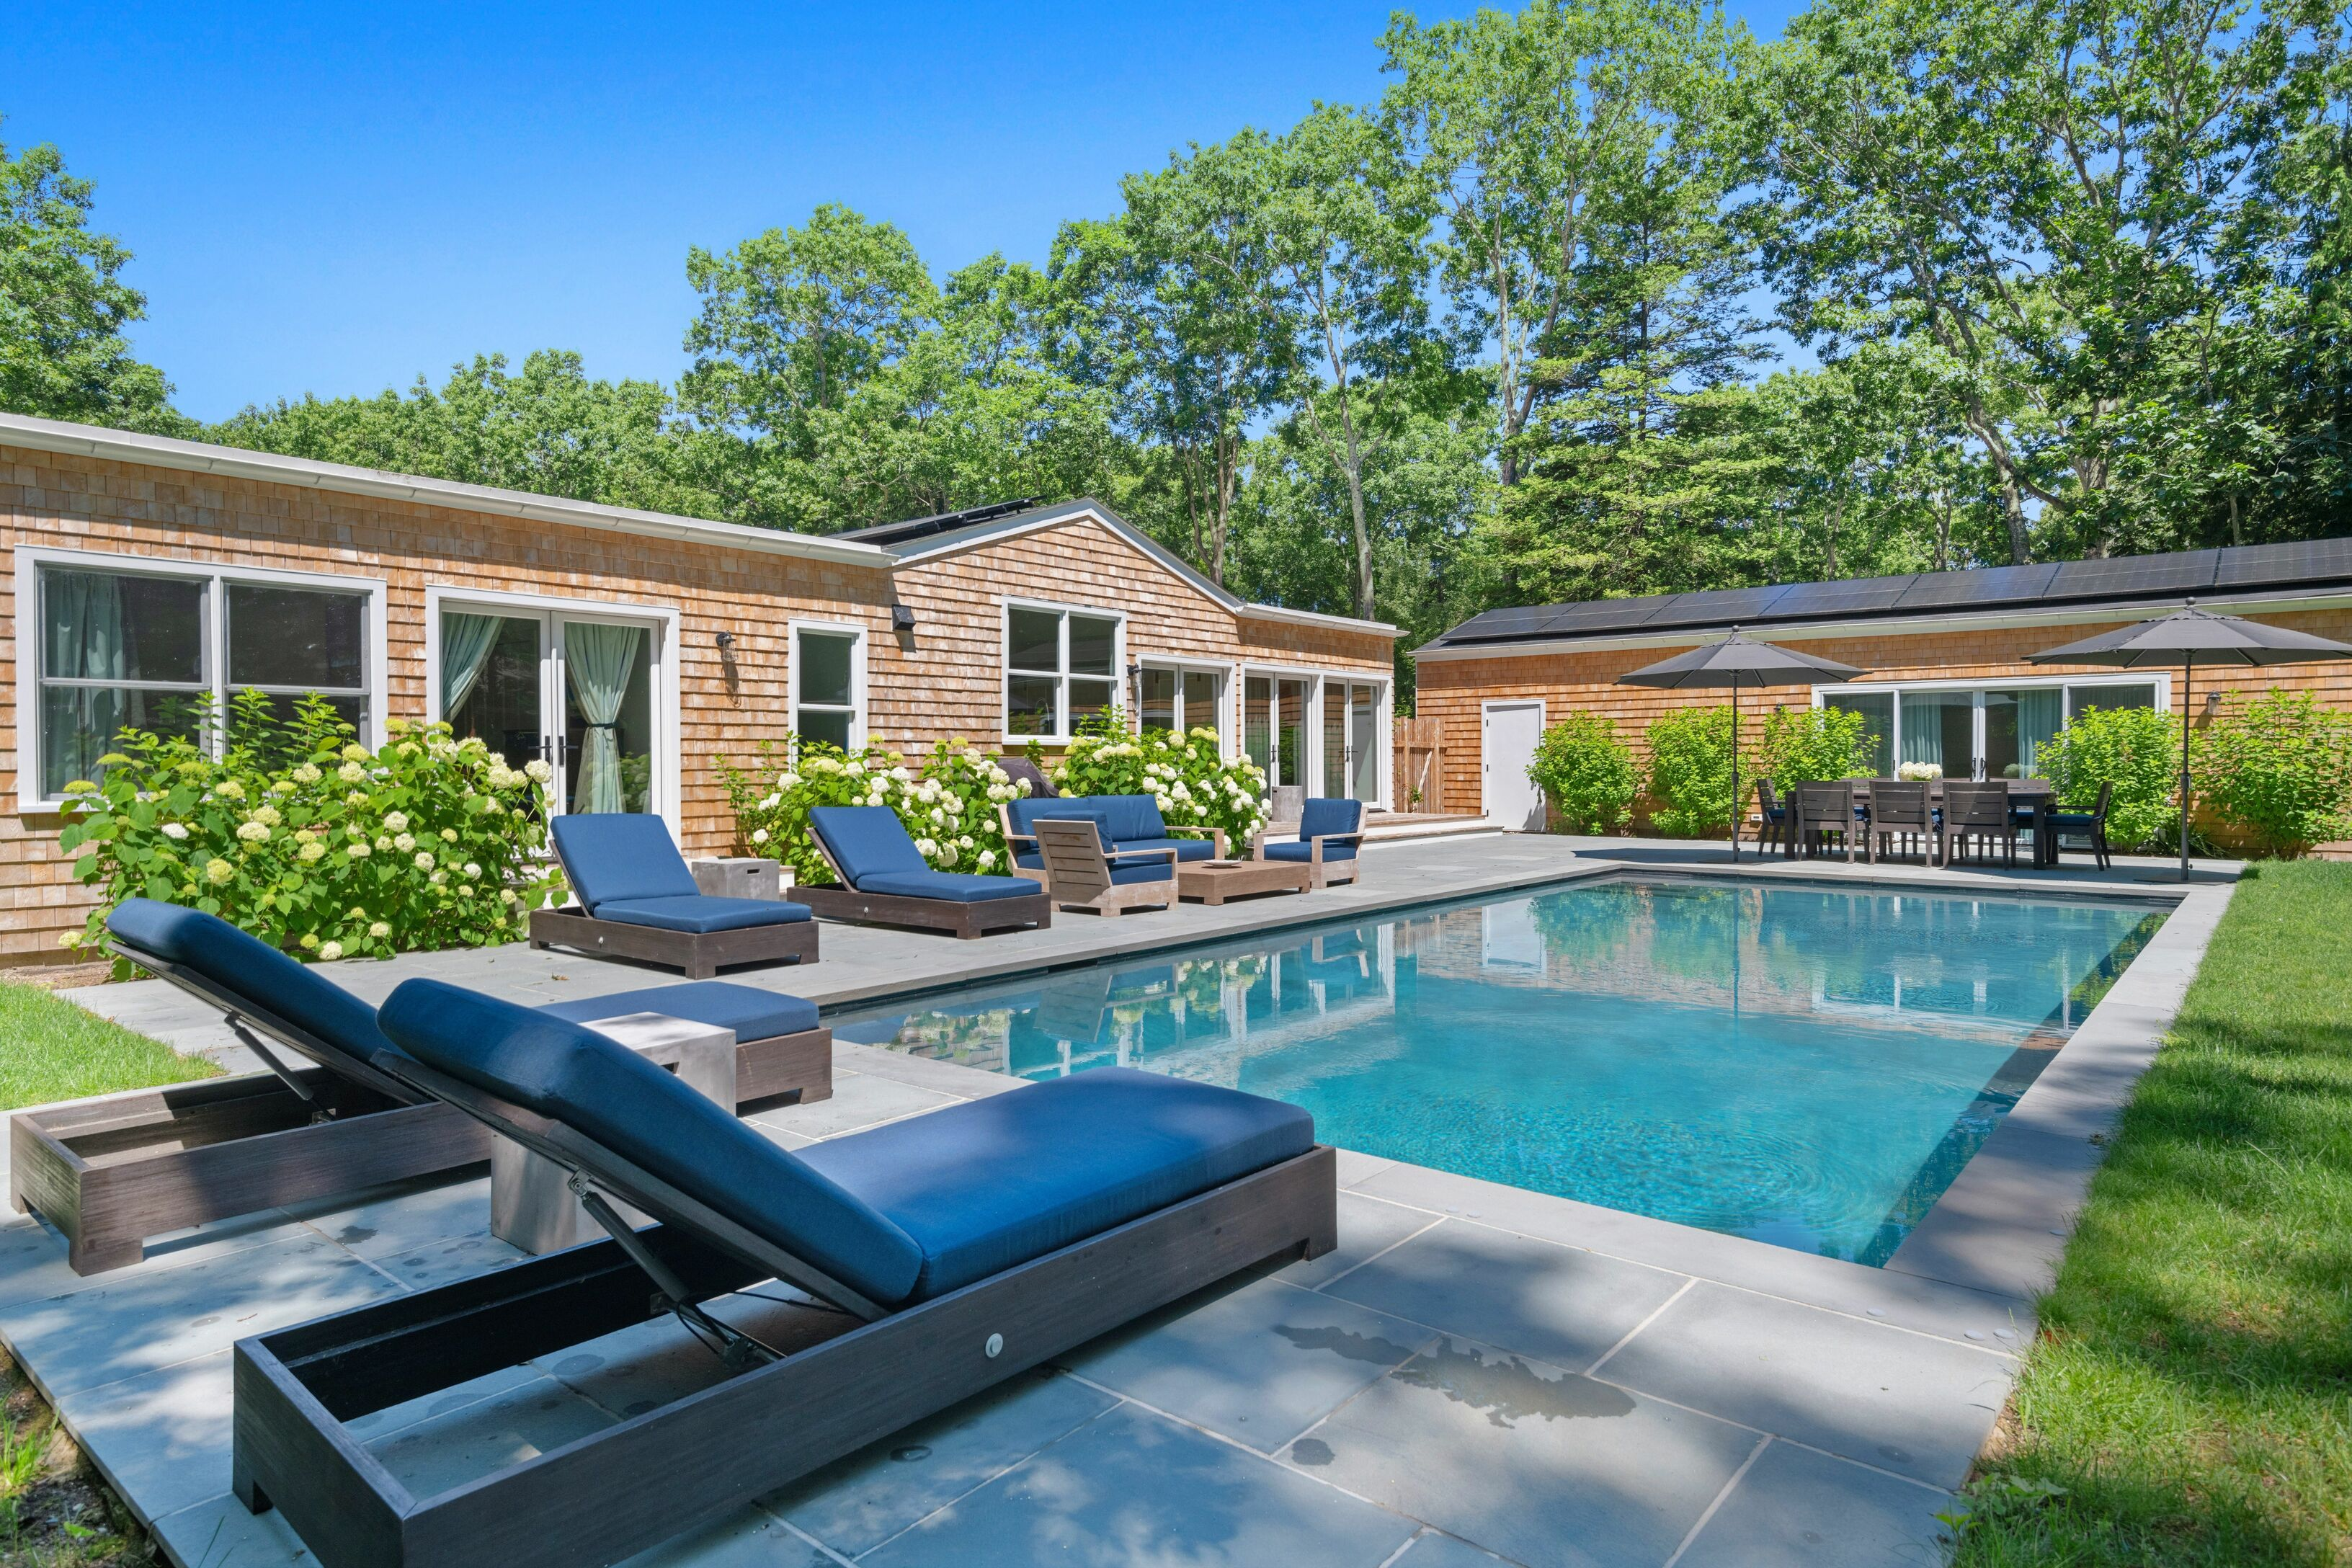 1580 Sagg Rd - Sag Harbor, New York